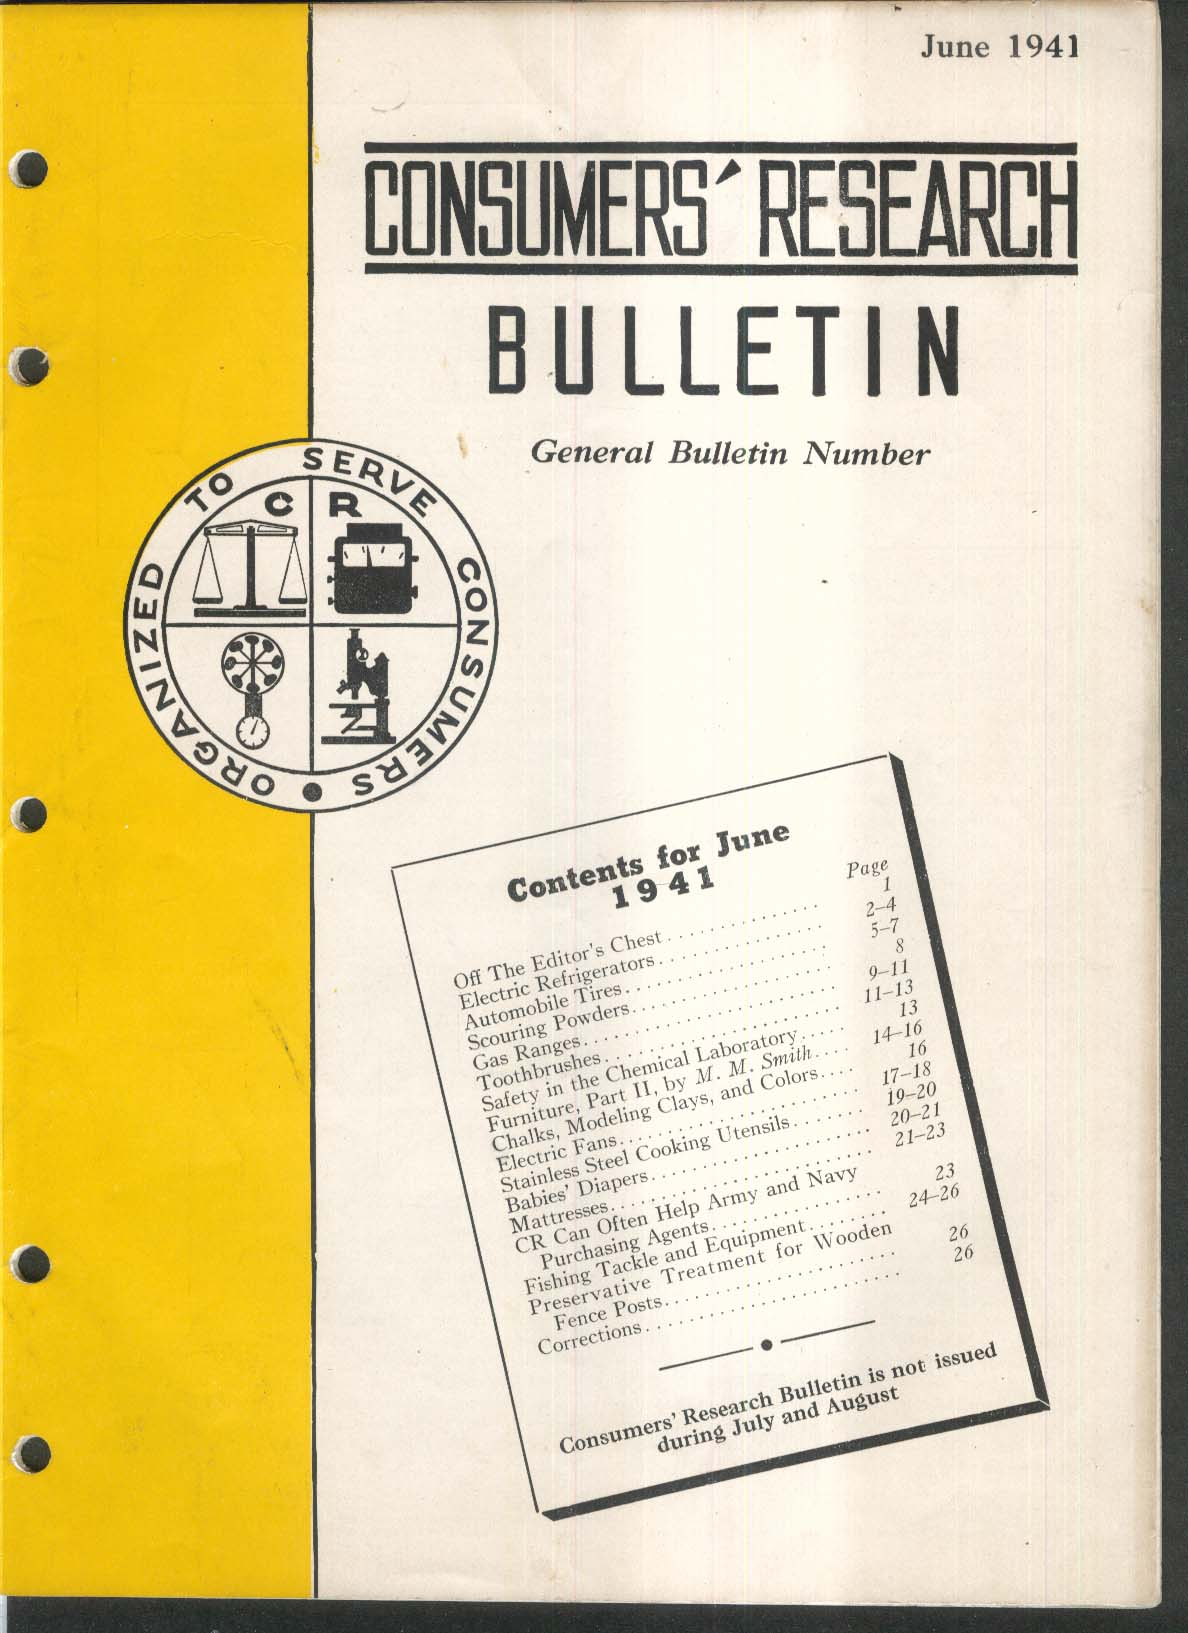 CONSUMERS RESEARCH BULLETIN Refrigerators Tires Gas Ranges Diapers ++ 6 1941